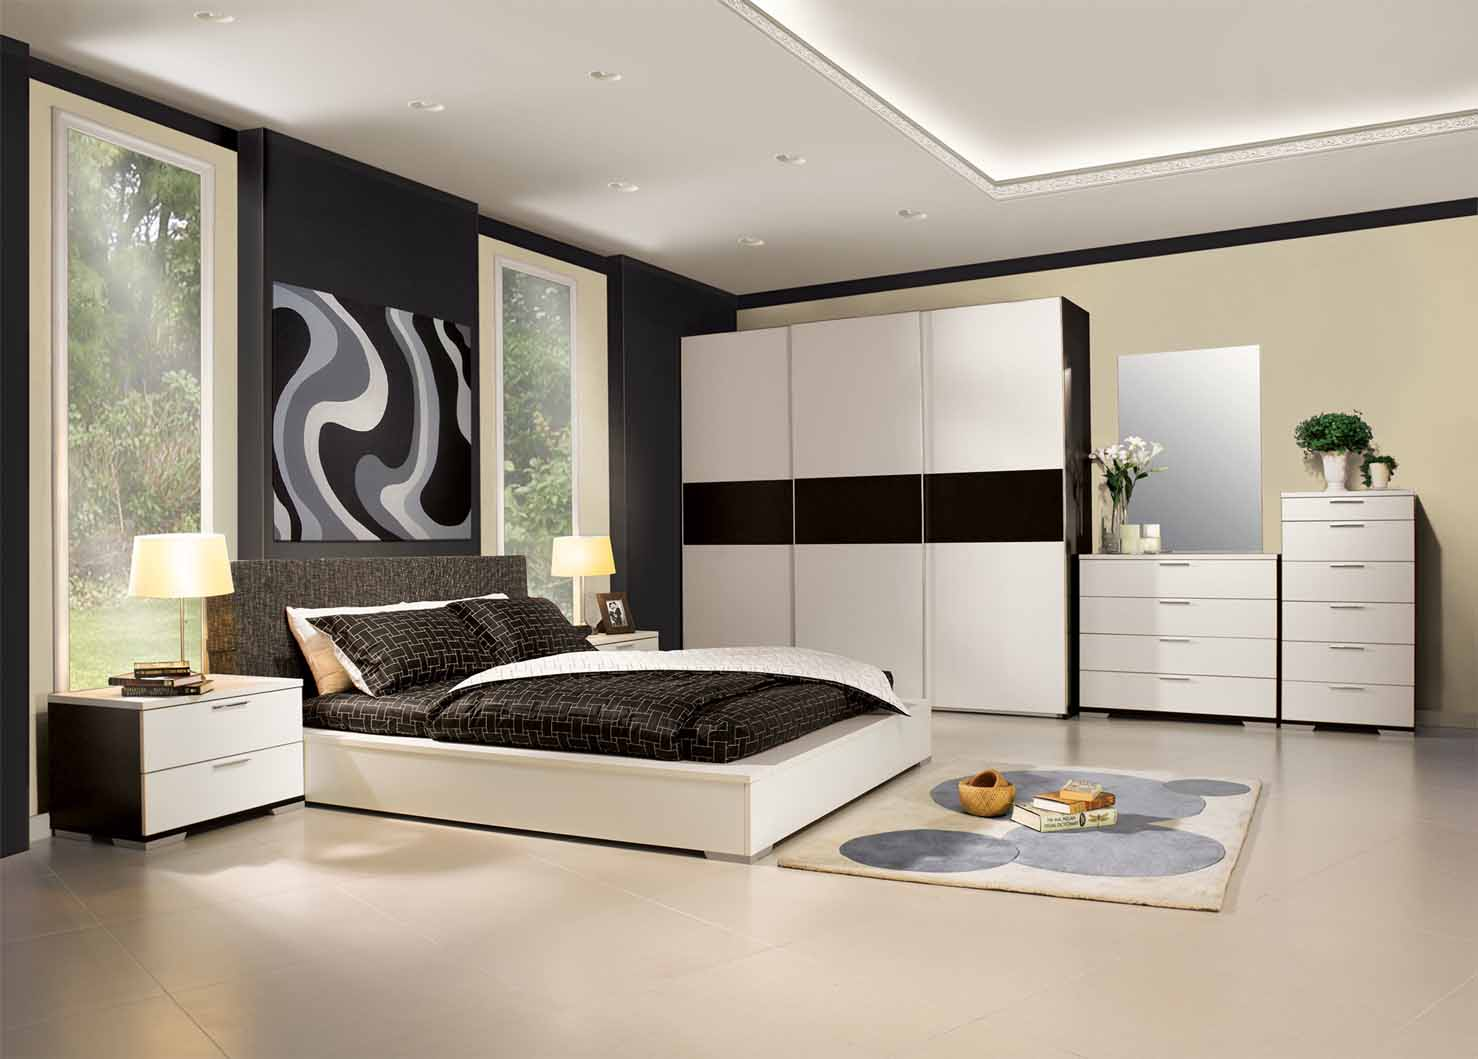 Modern bedroom design fouadtalal for New bedroom designs photos